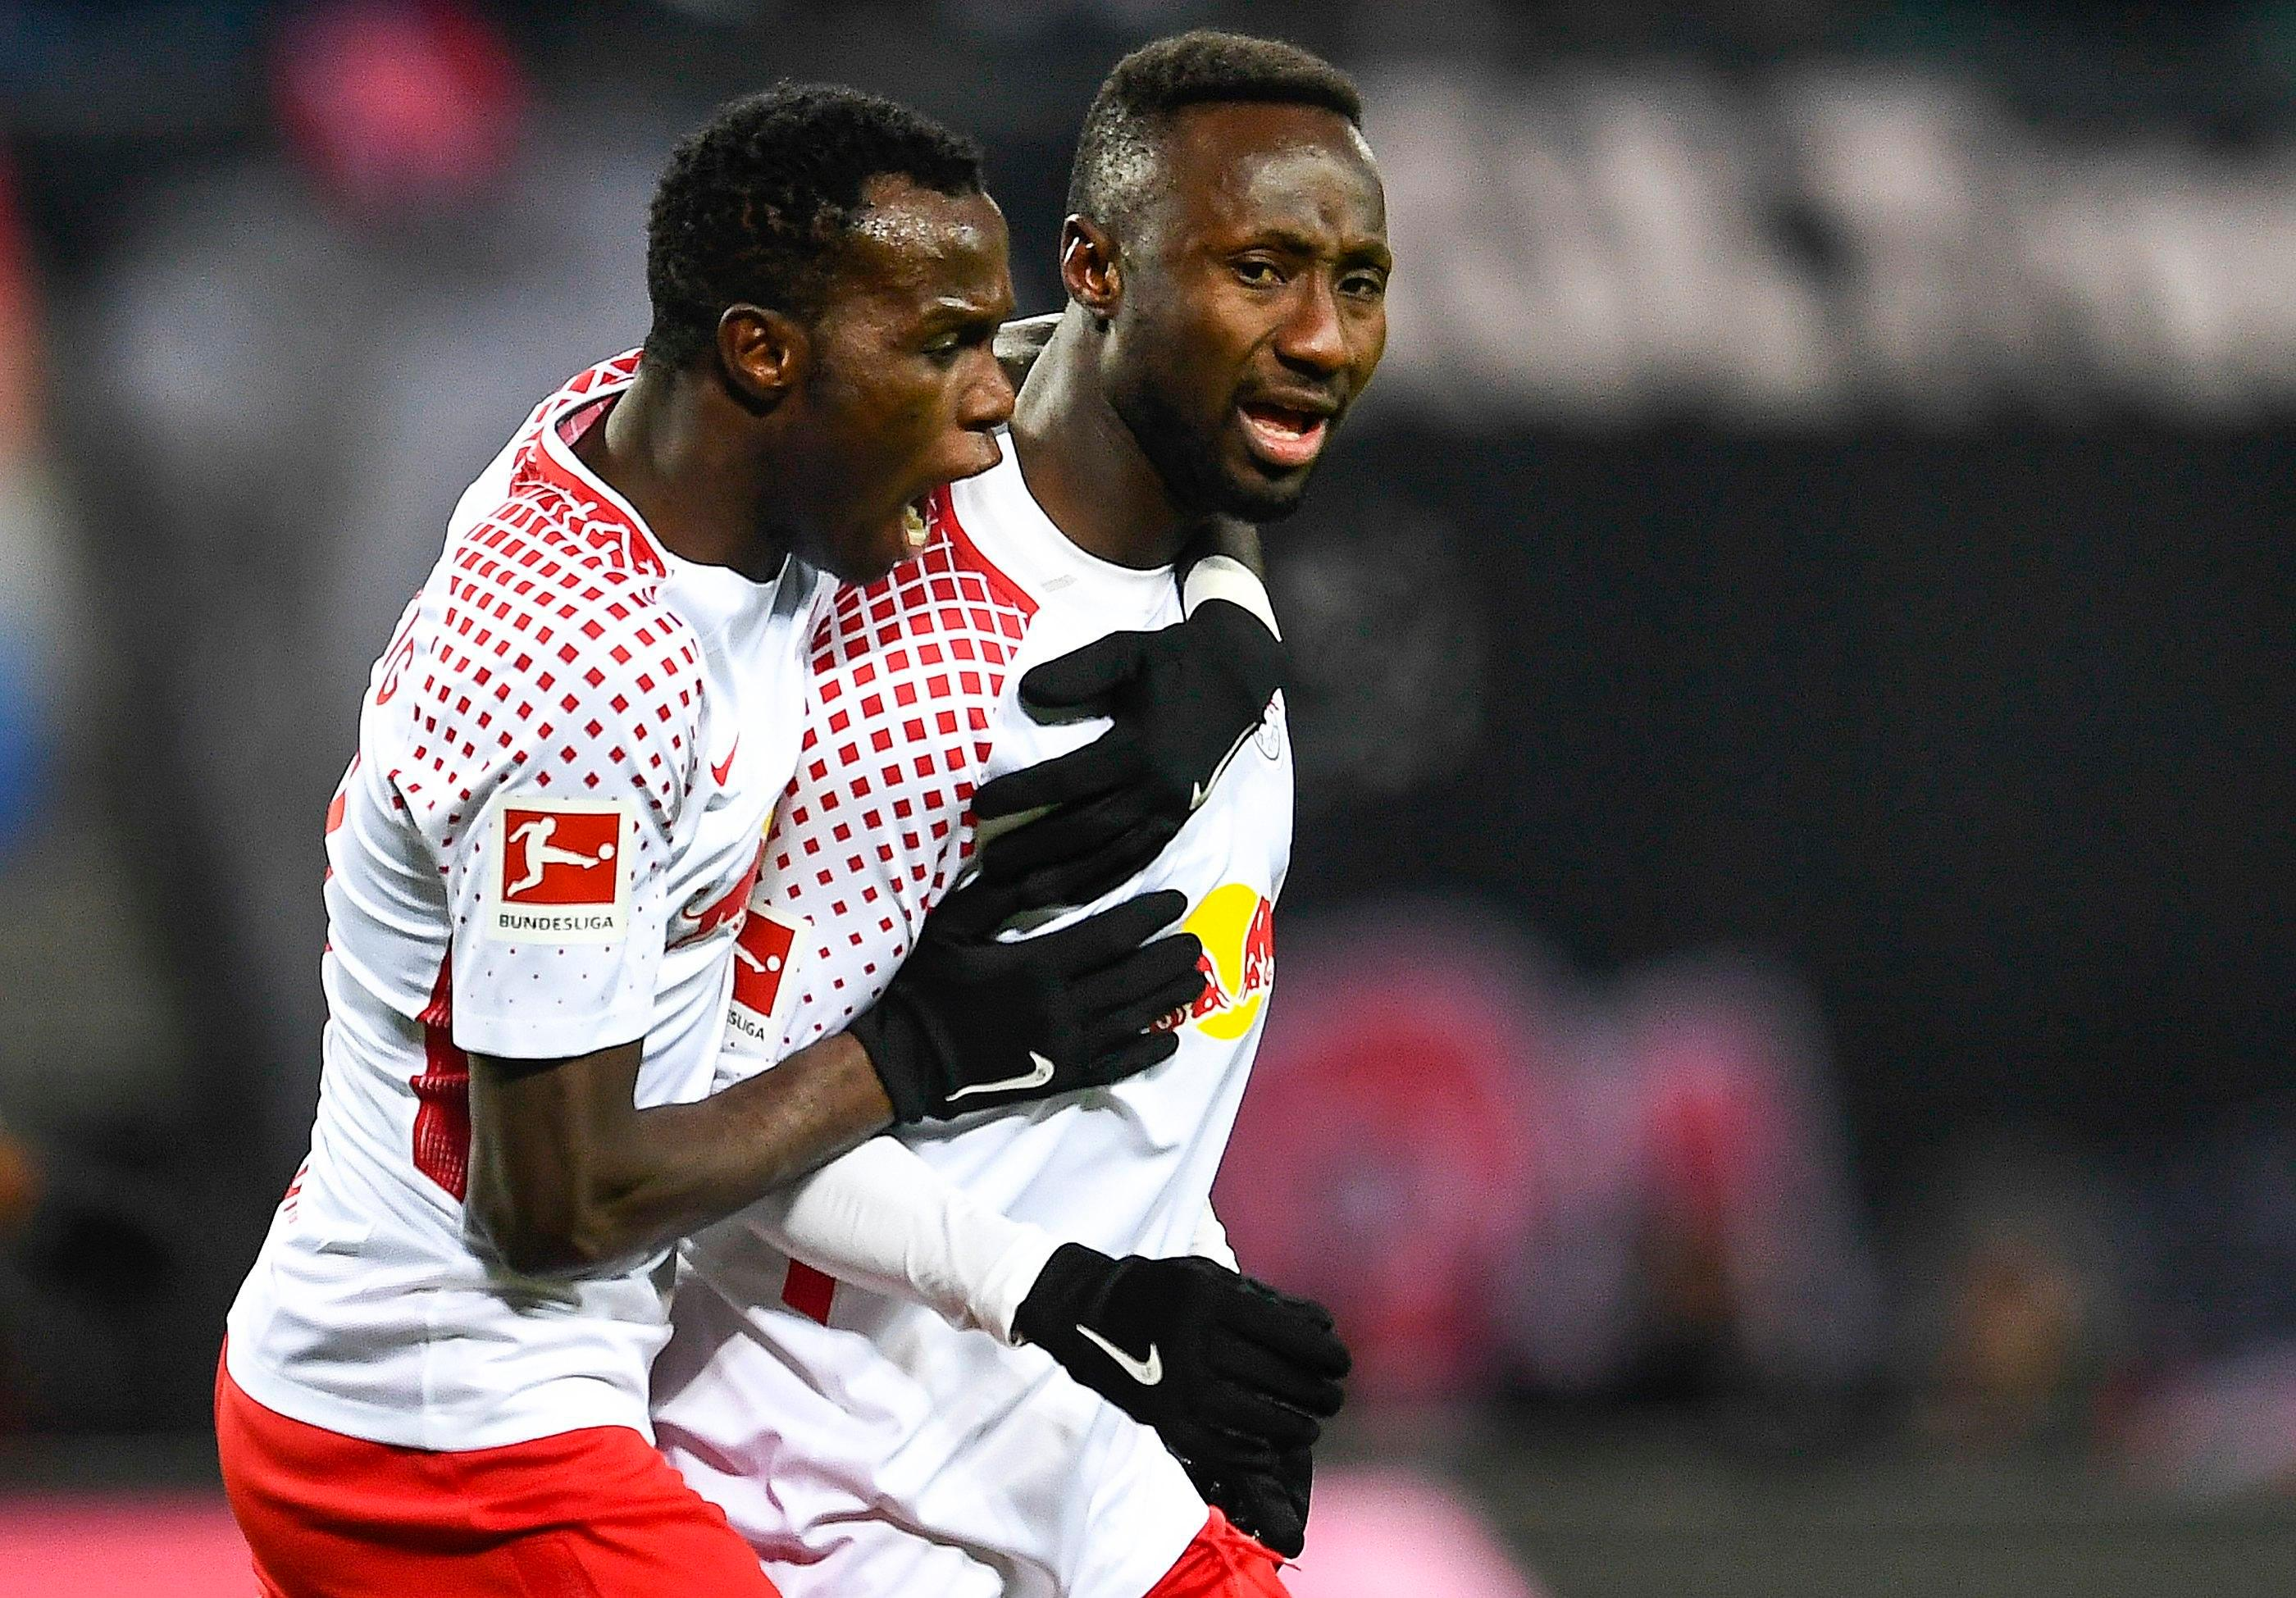 RB Leipzig 2 Bayern Munich 1: Naby Keita gives Liverpool fans a taste of what's to come with goal and assist